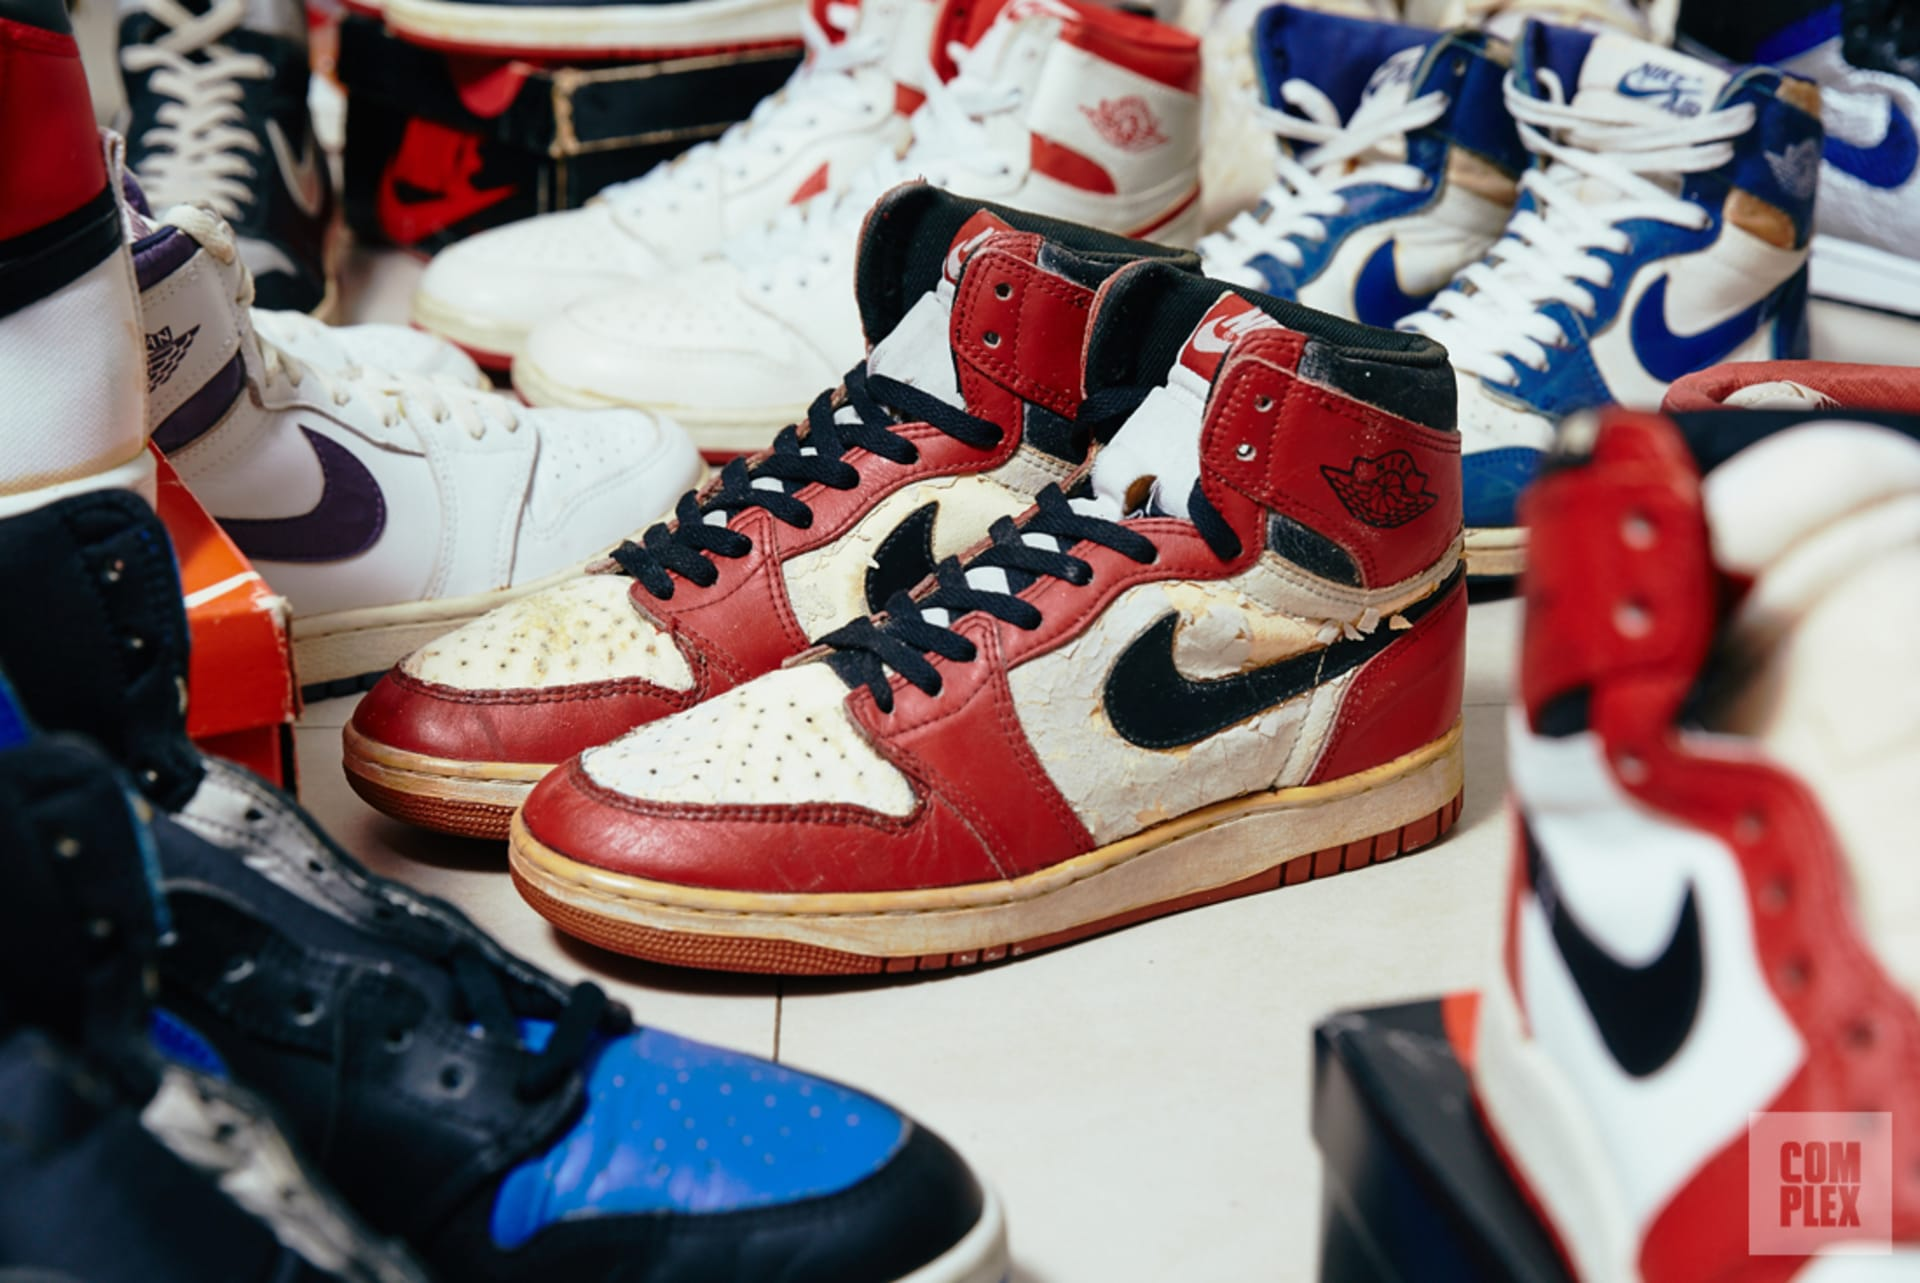 ca9a1b760e53 Meet the 17-Year-Old With the Best O.G. Air Jordan 1 Collection ...